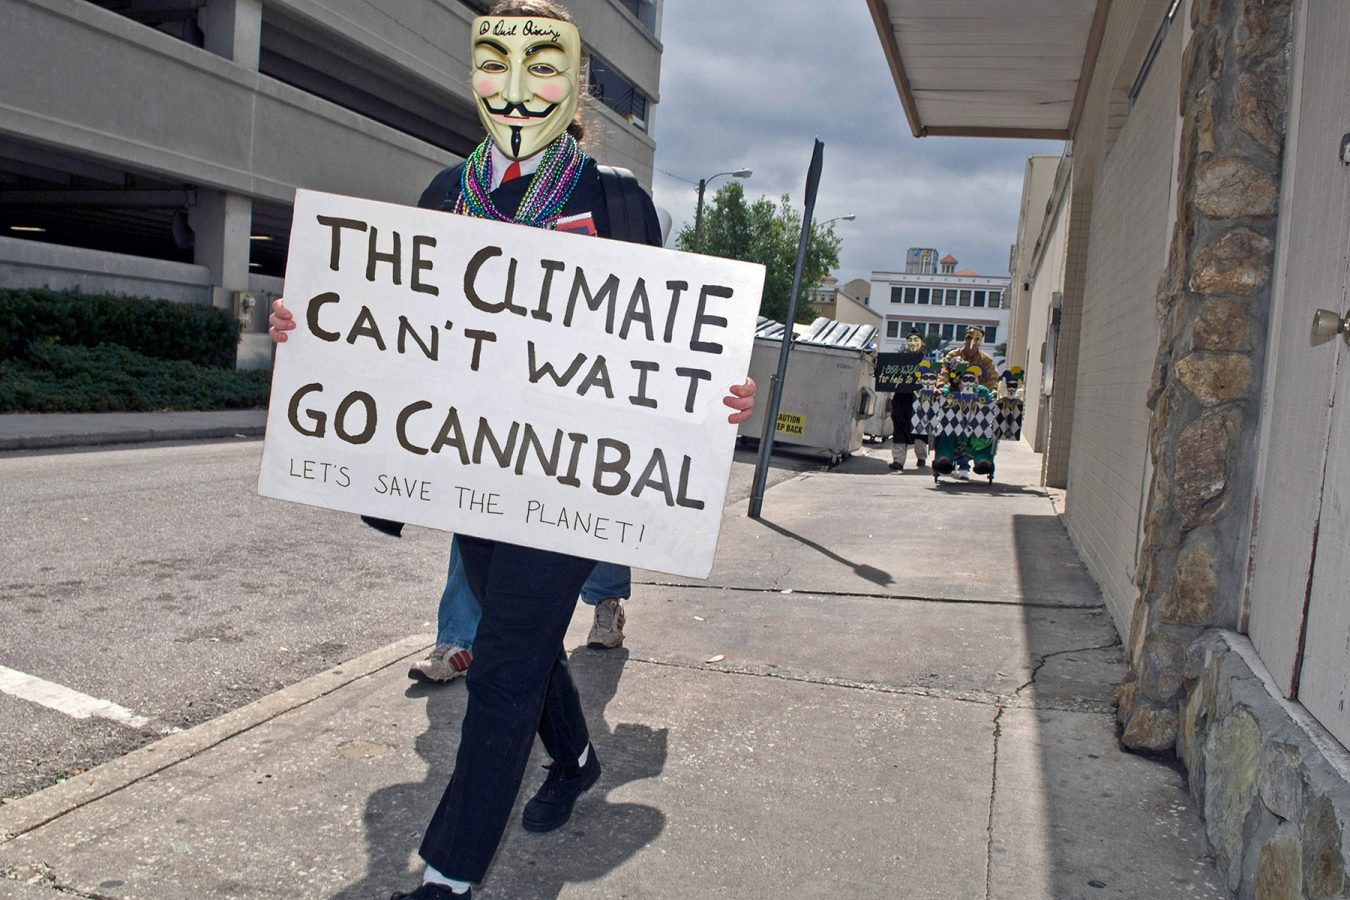 The Climate Can't Wait! Go Cannibal!